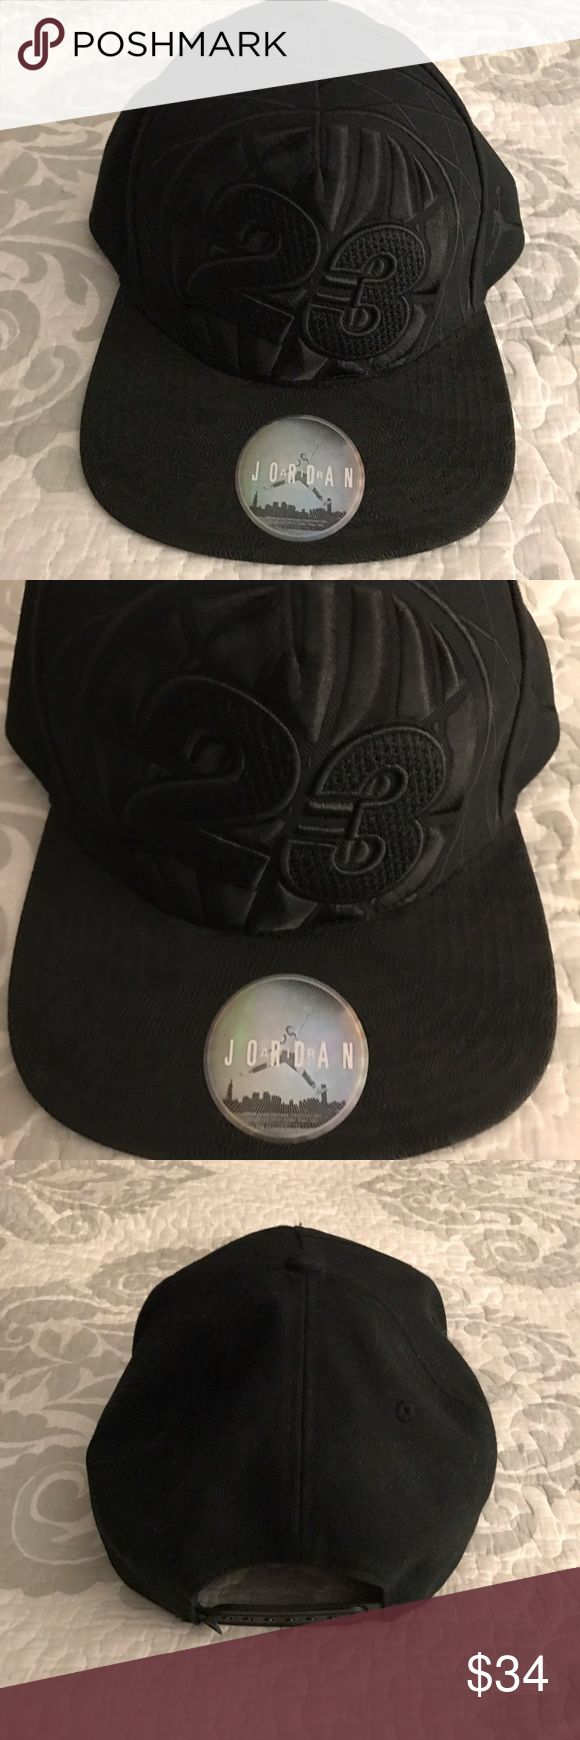 Nike Air Jordan All Star Game Toronto SnapBack cap Nike Air Jordan All Star game Toronto 2016 SnapBack cap in the color-Black , Size-OSFA this hat is a must have for hat & Michael Jordan fans, hat has a lace like black bill will Jordan's number 24 raised for a 3D effect , this hat has been worn but taken care of & from a smoke free home. Nike Jordan  Accessories Hats